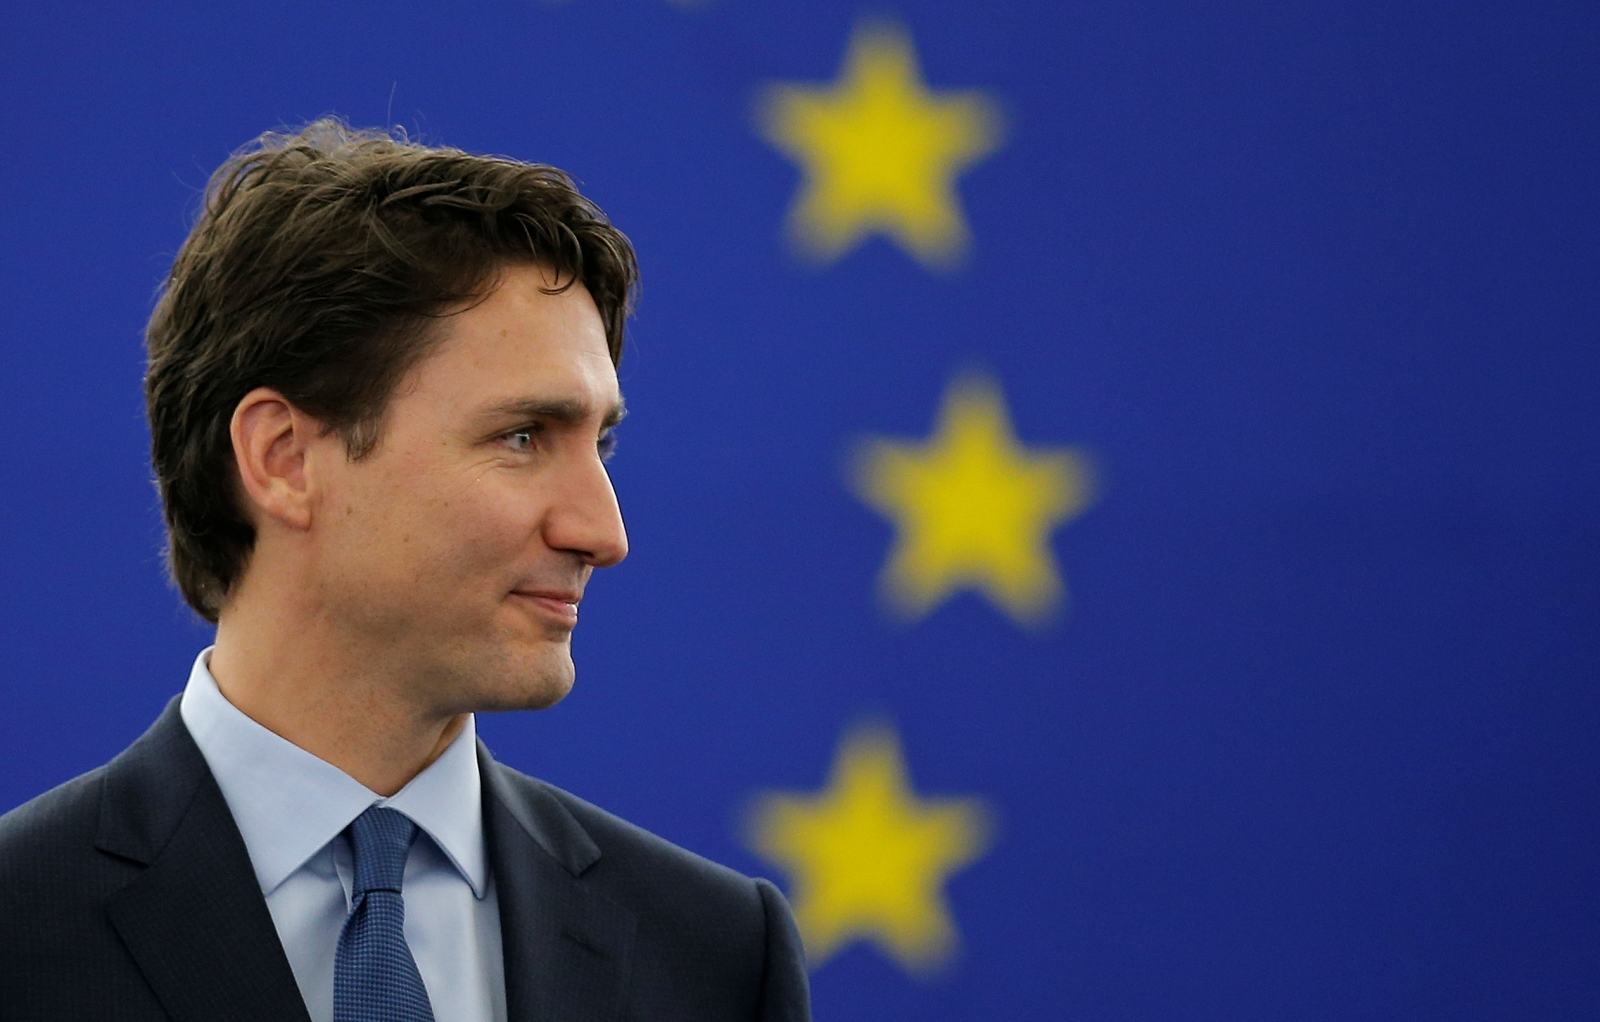 Trudeau Gives EU Praise Amid Brexit, US Trade Tensions, And A Warning